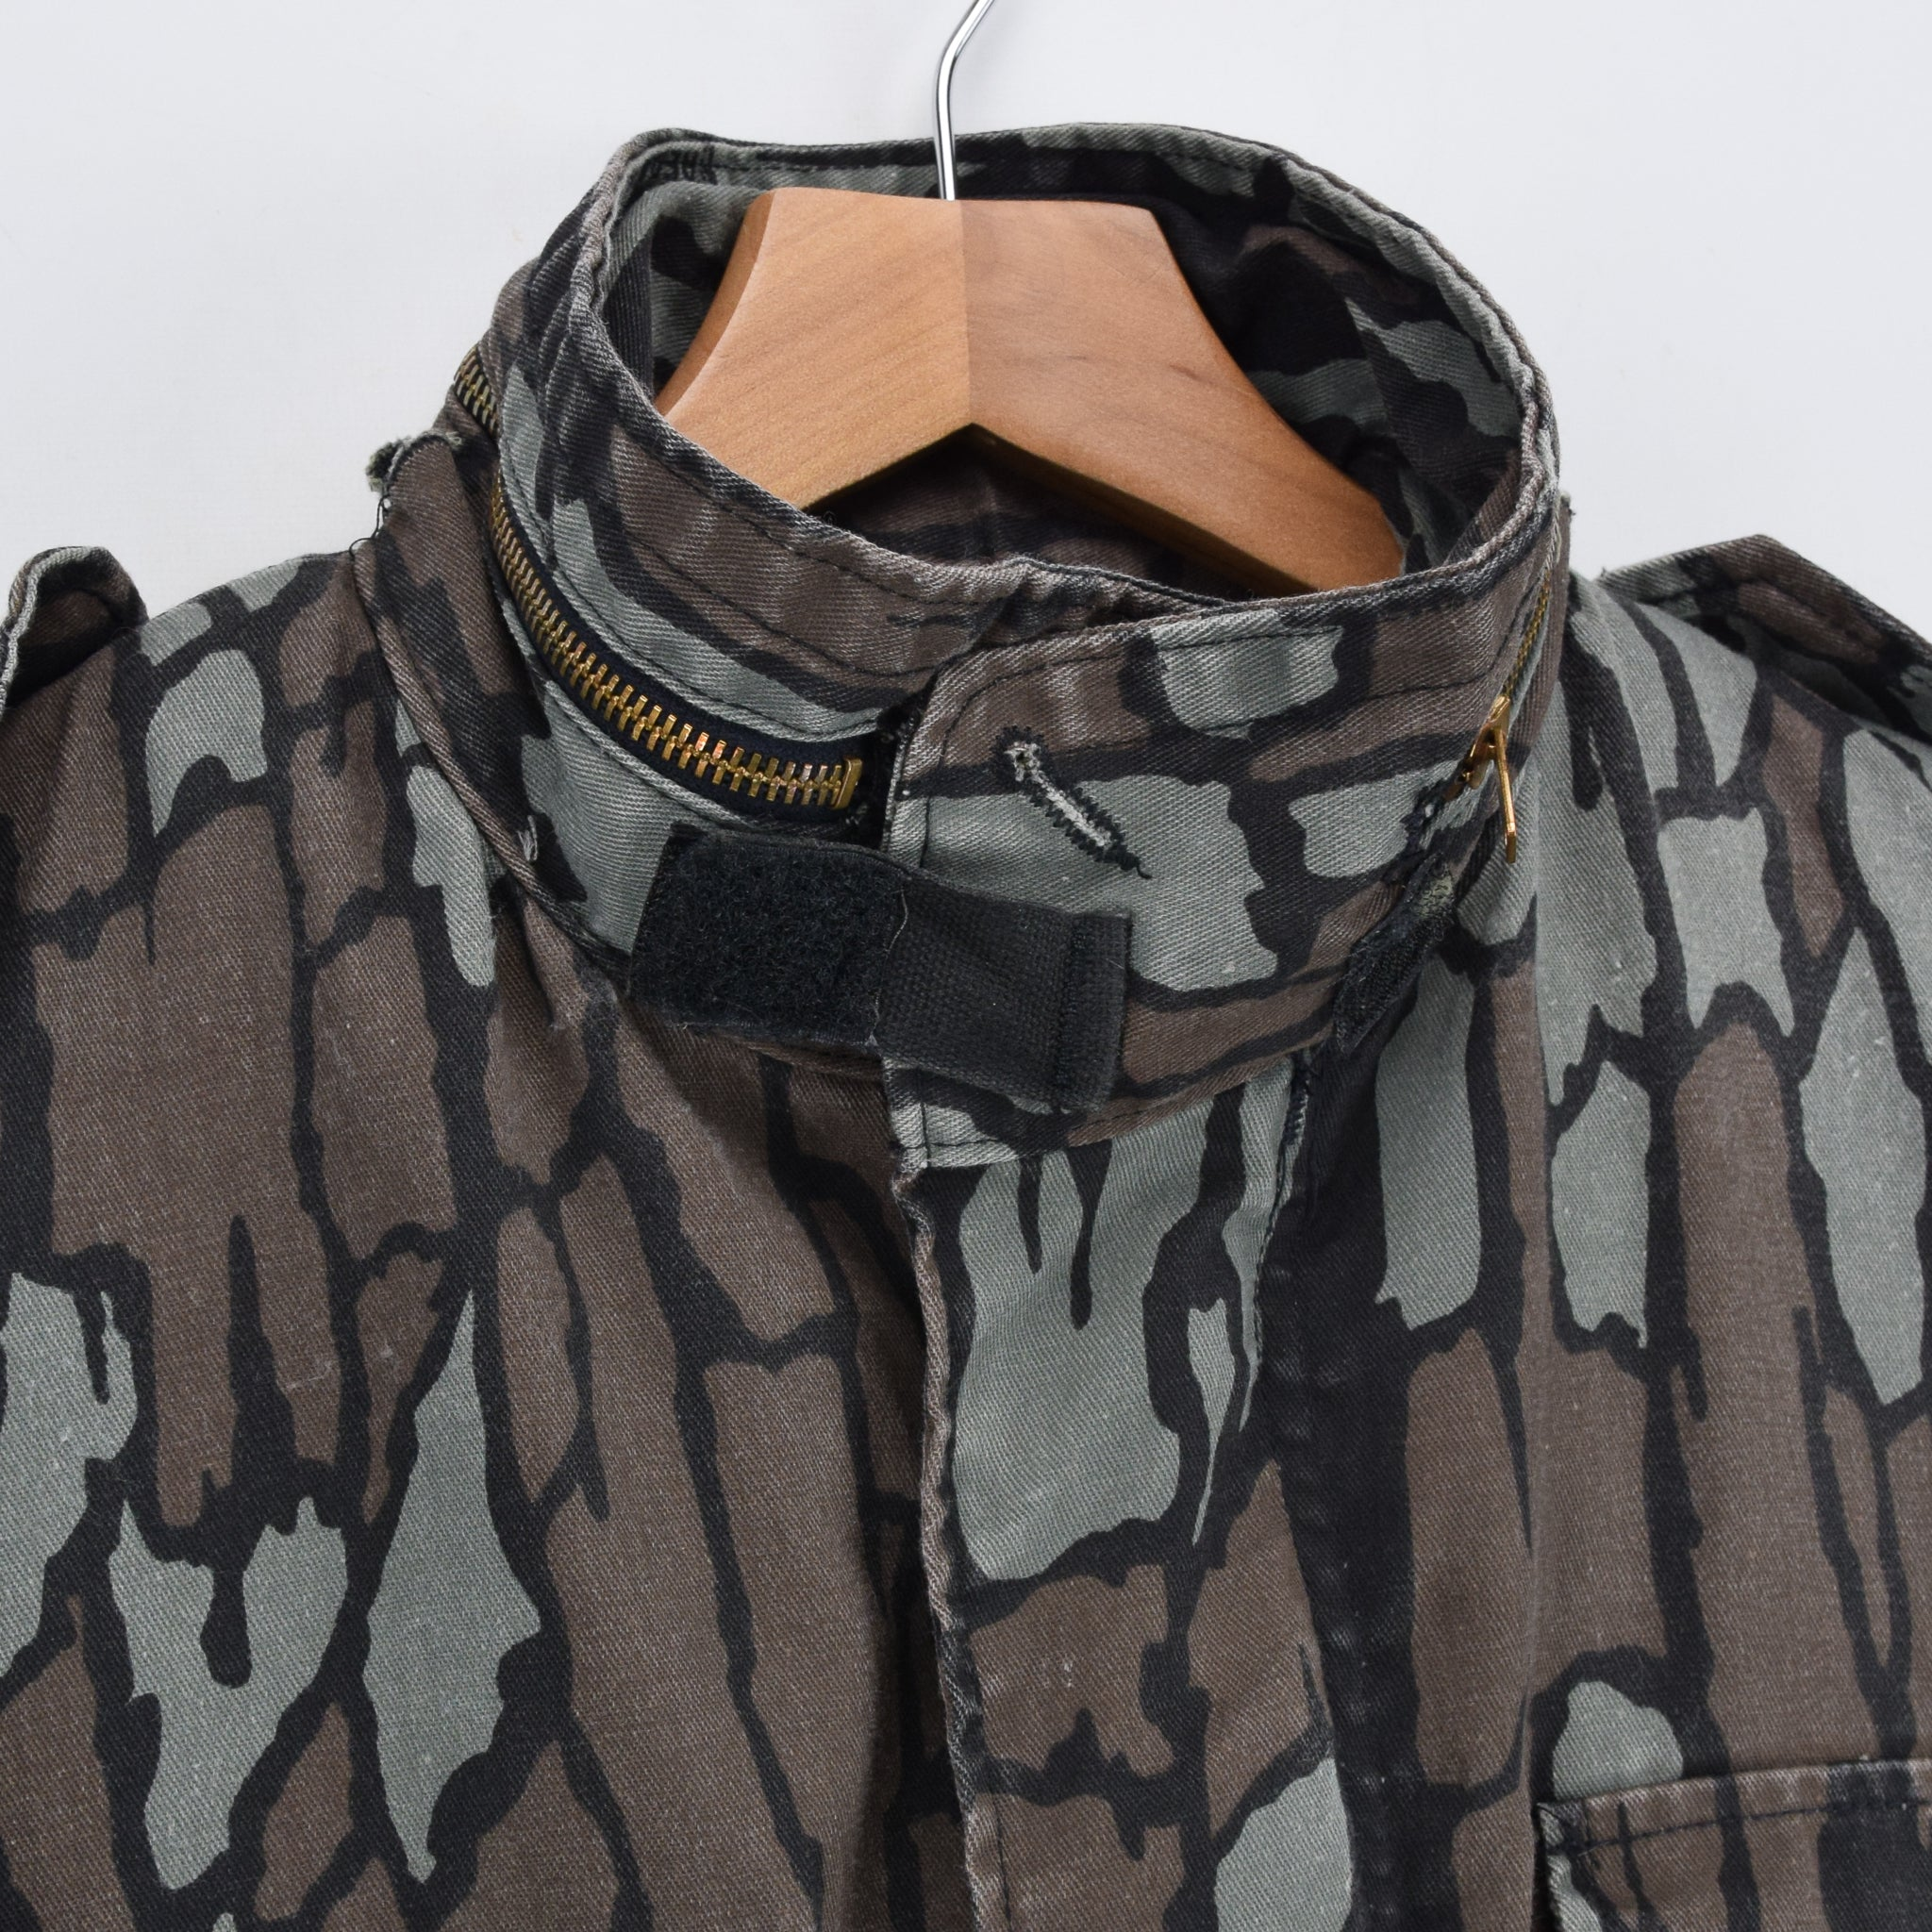 Vintage M-65 Alpha Industries Trebark Camouflage Field Coat Army Jacket M Reg collar